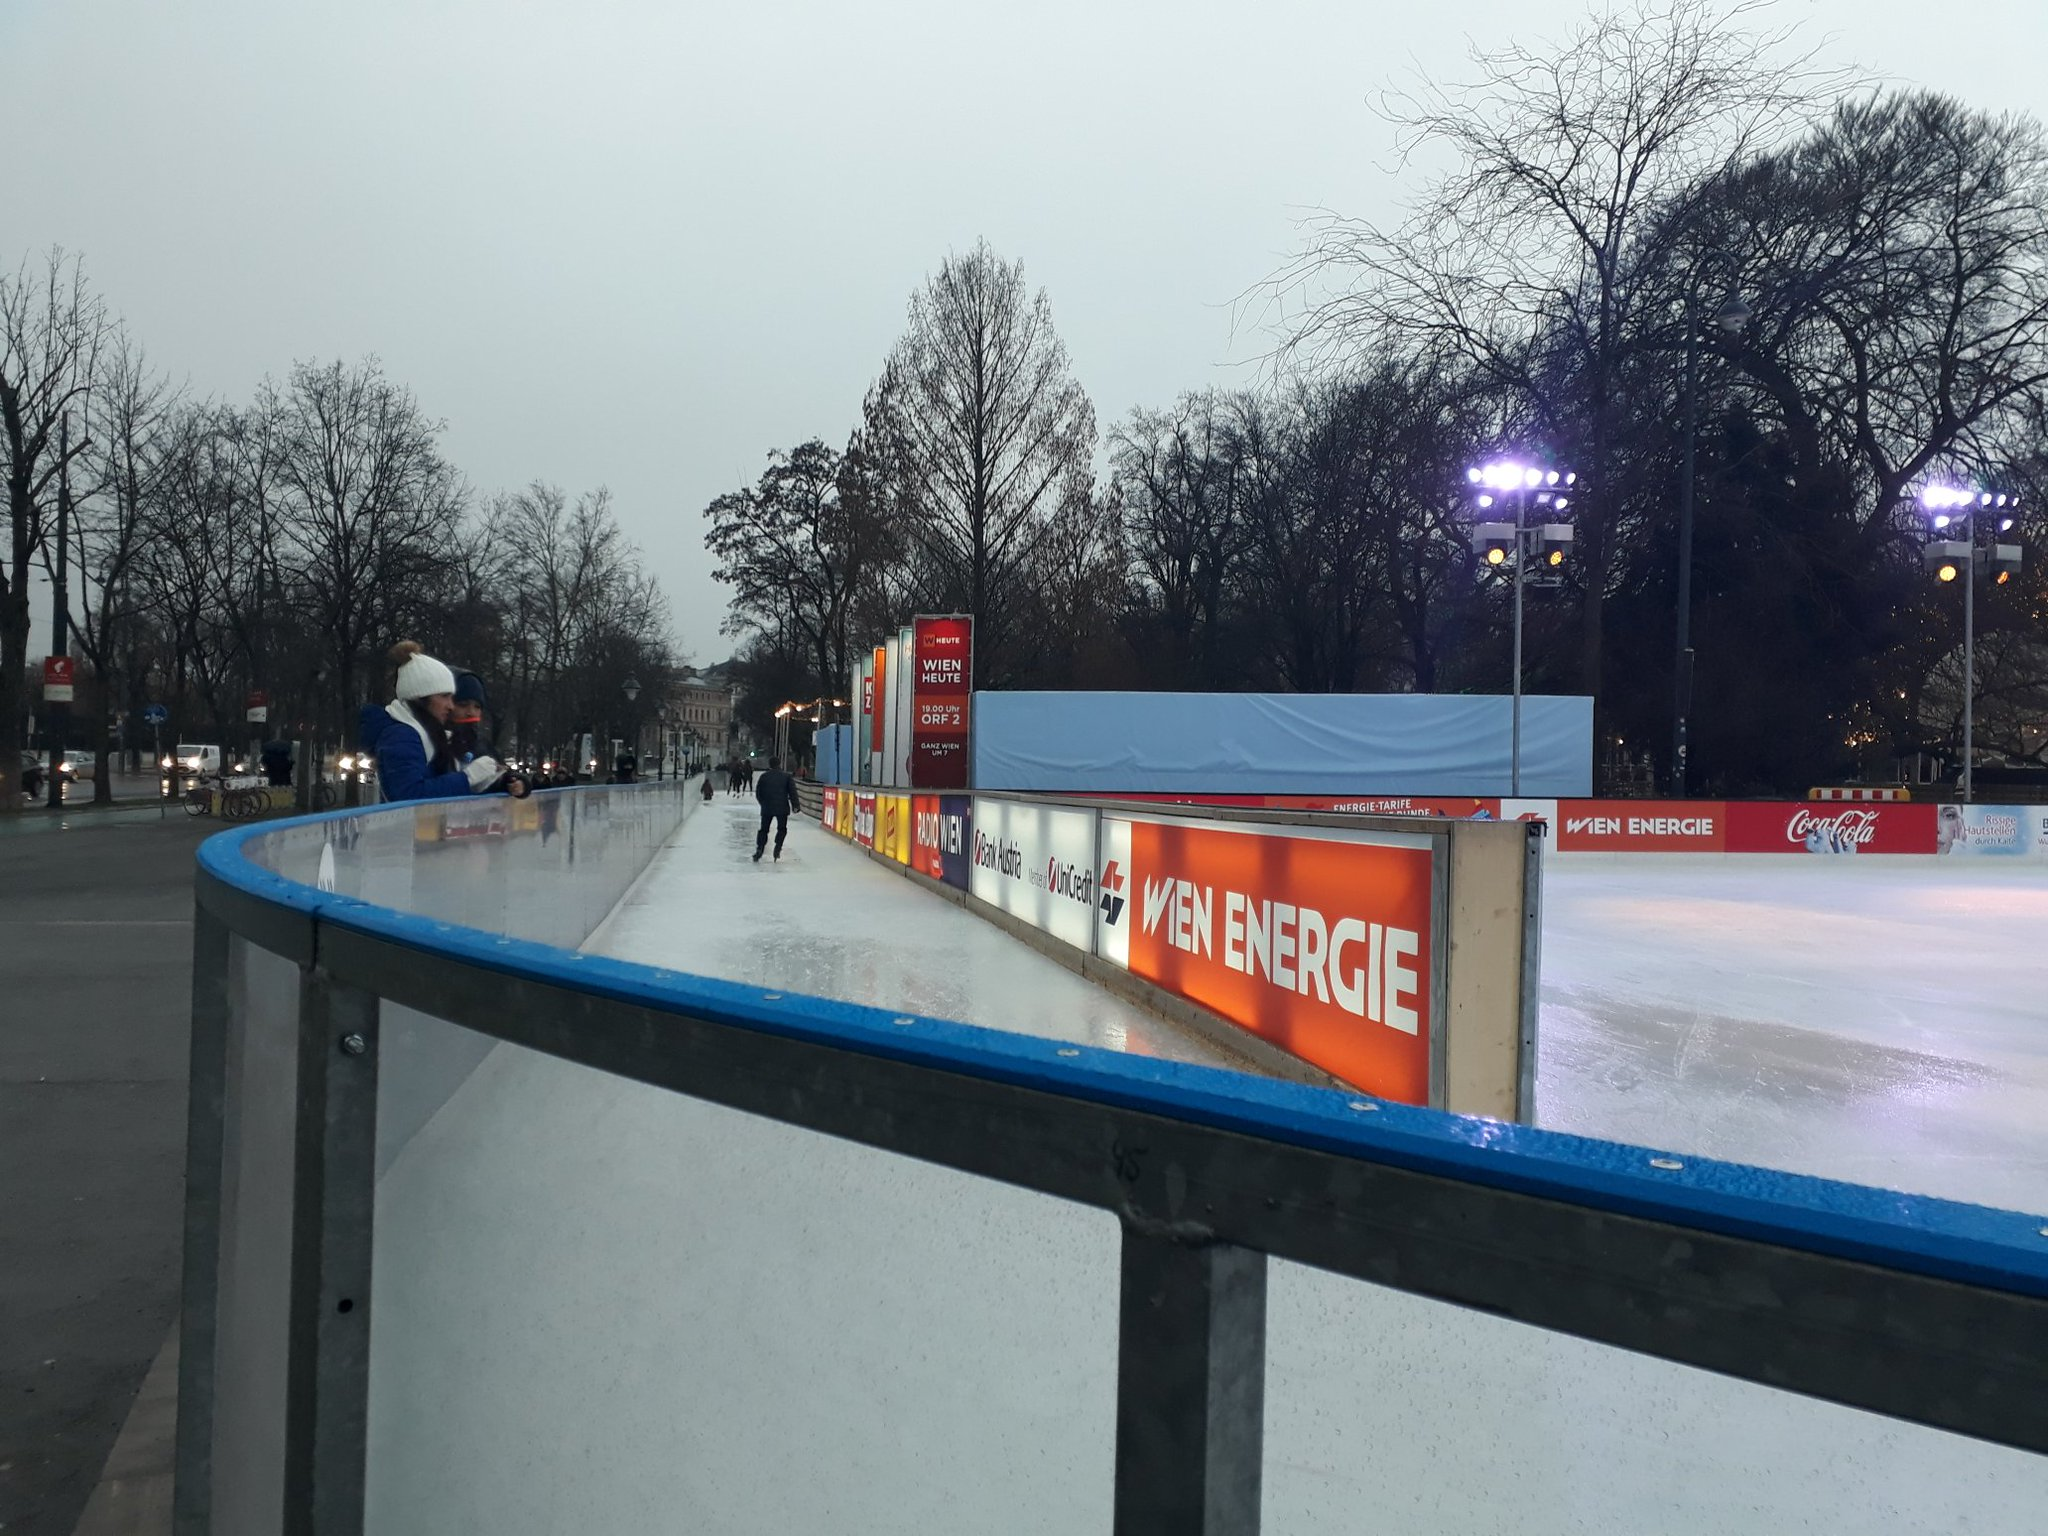 I like it- in Vienna they dont just have an outdoor icerink but an ice path through a park in the centre of the city https://t.co/Cv8I0LASjm